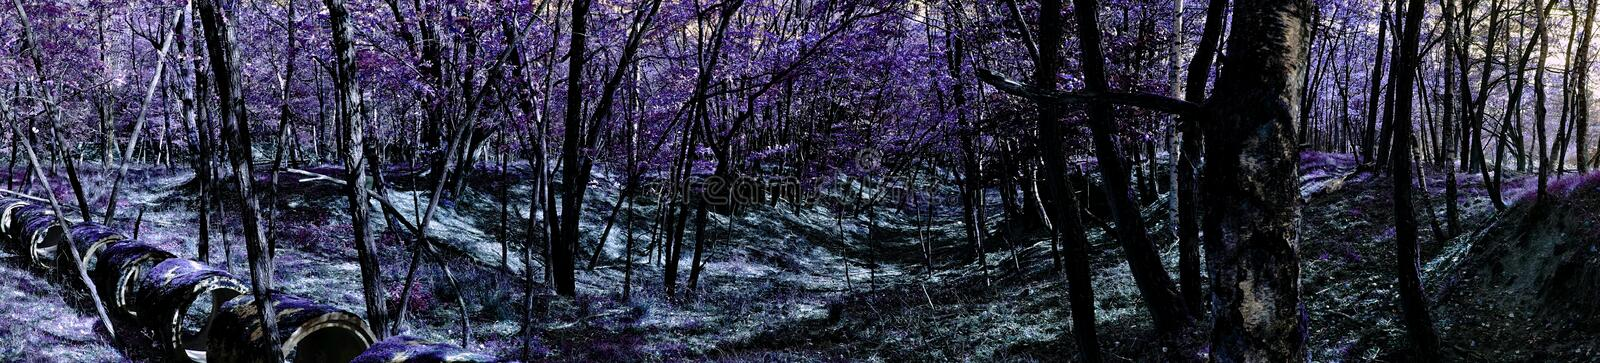 Download Panoramic Landscape Of Fantasy Woods Stock Image - Image: 60709113